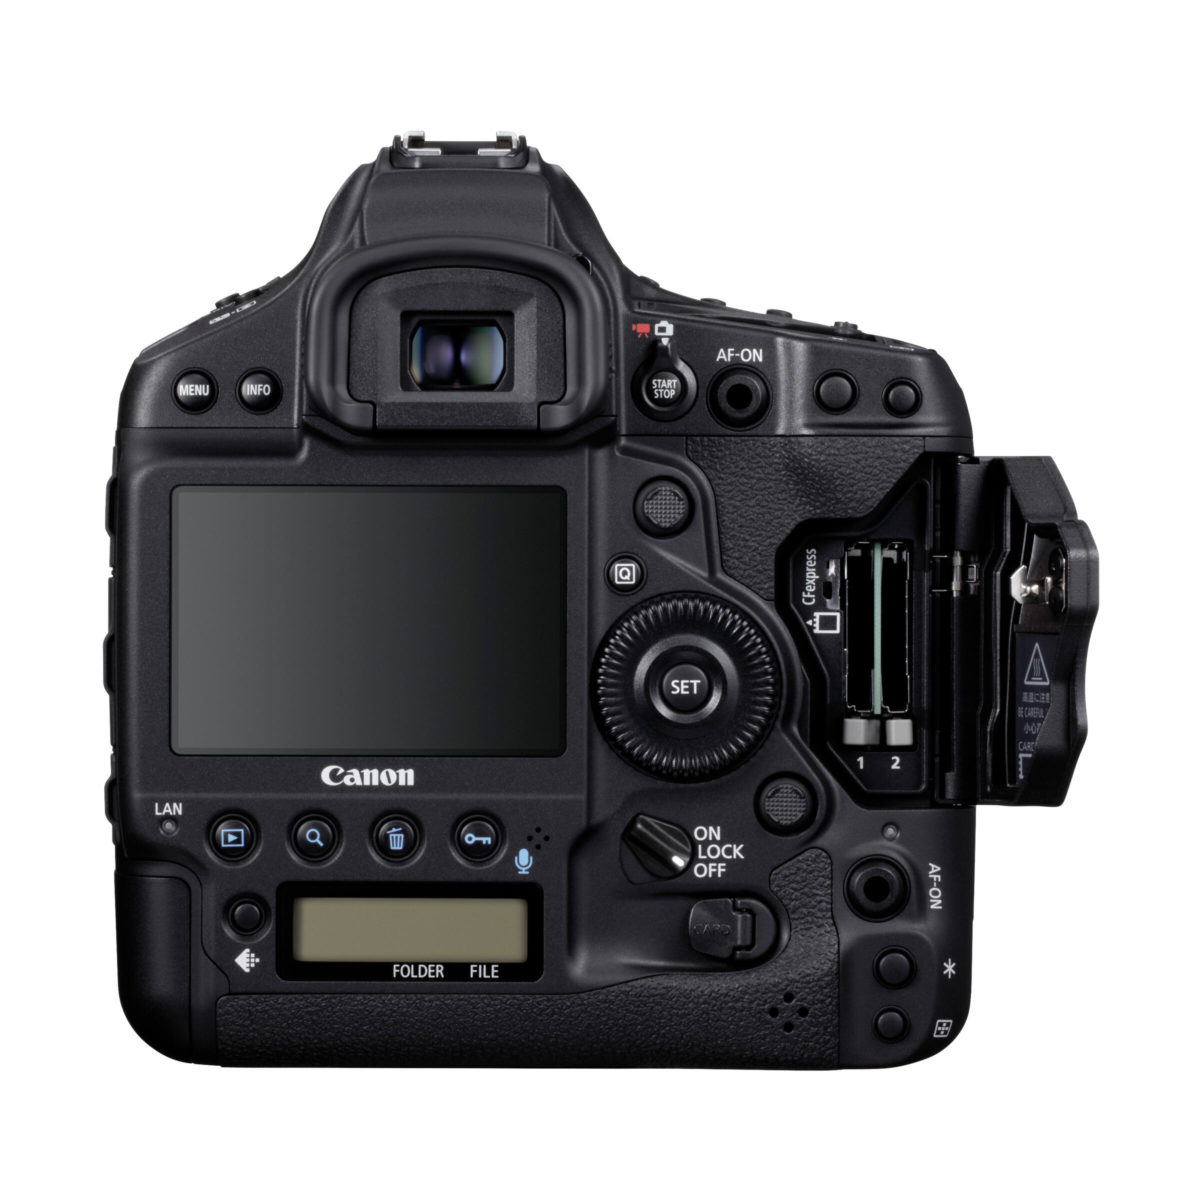 canon_eos_1d_x_mark_iii_body_03